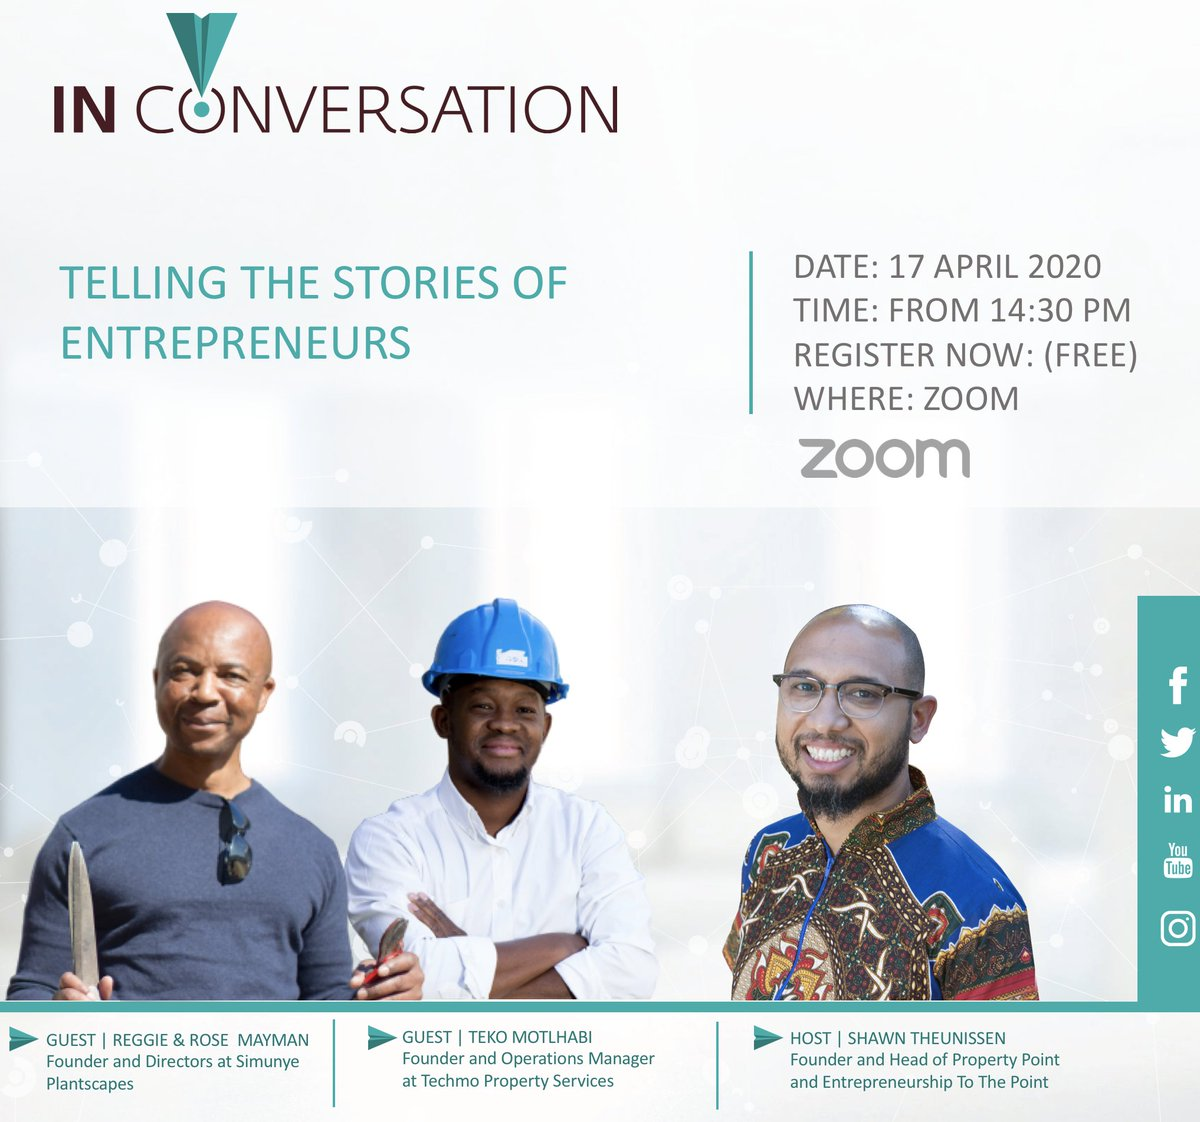 Join us at 14:30 as we continue our #InConversation session, telling the stories of entrepreneurs. We had a technical issue this morning but will be back at 14:30. Register free via this link https://t.co/a1iHmeWKfZ https://t.co/7DafXcBWRw https://t.co/SgoIObPnAb